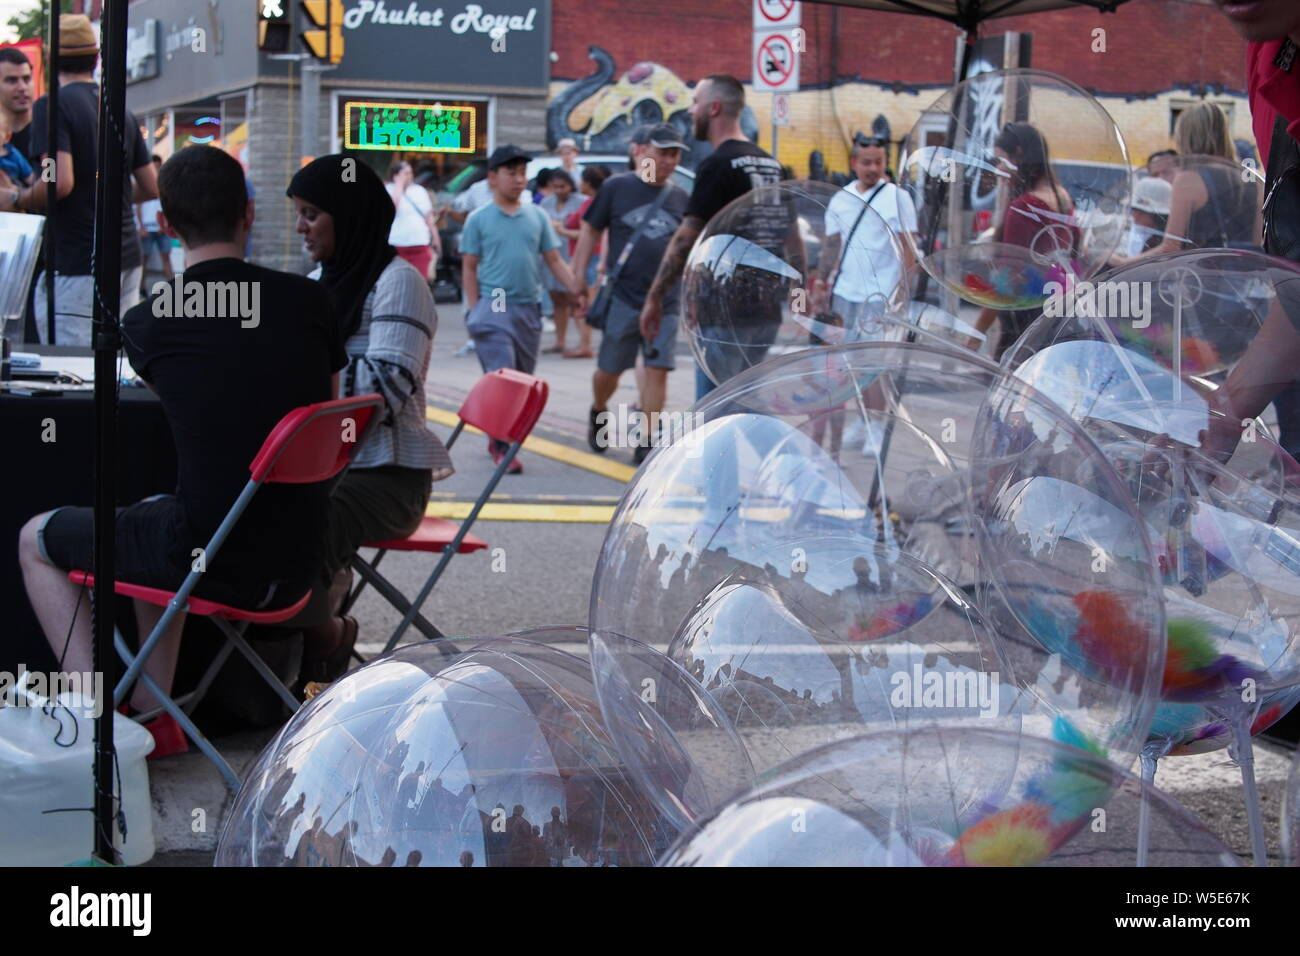 Balloons At Night Stock Photos & Balloons At Night Stock Images - Alamy